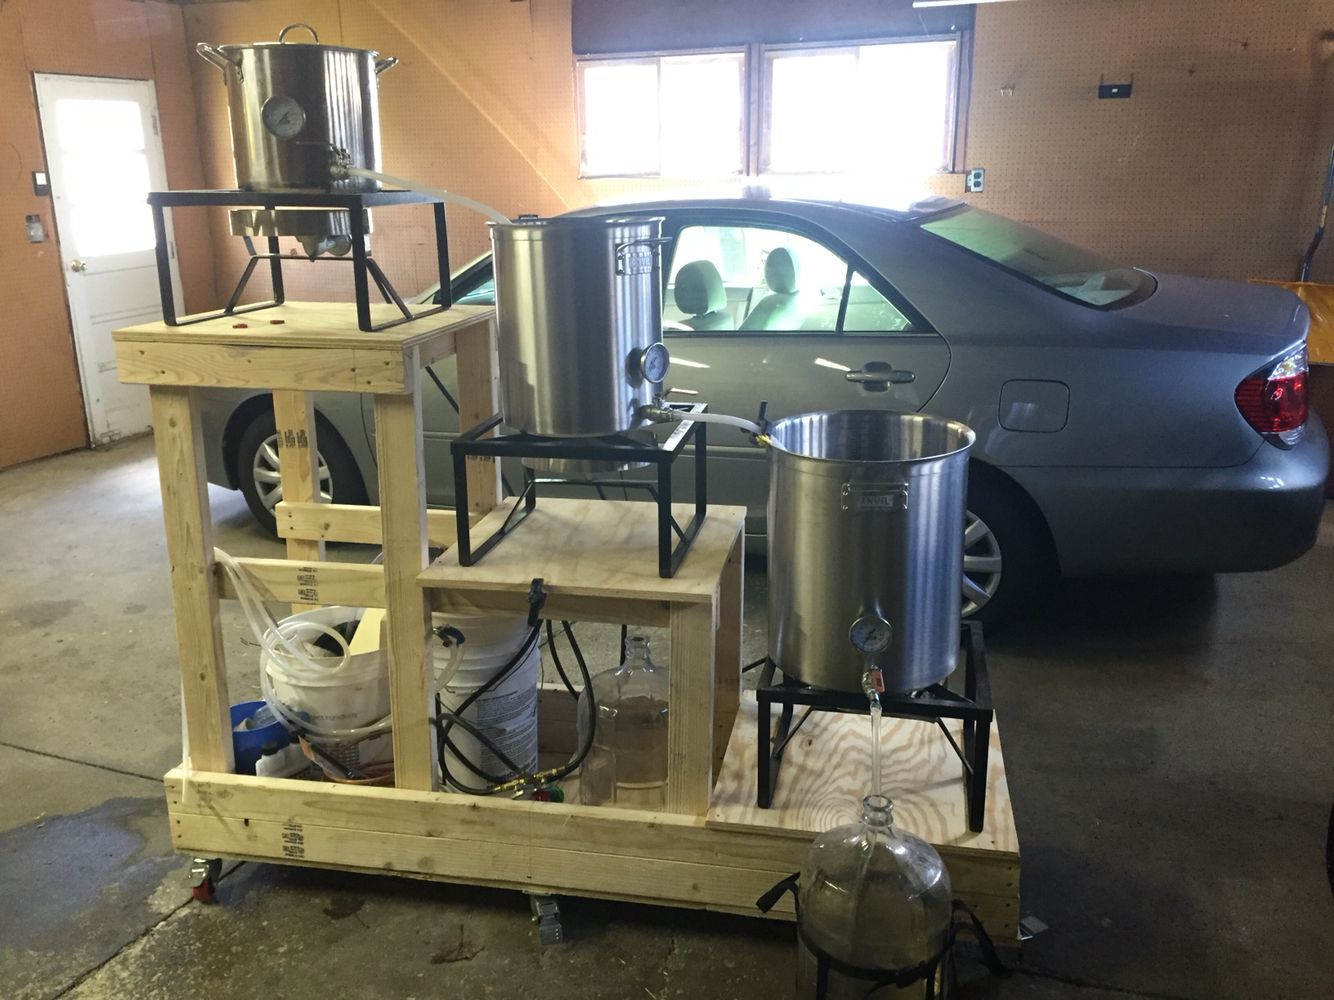 New brew rig converted old 5gal kettle to hlt 10gal for Craft kettle brewing equipment